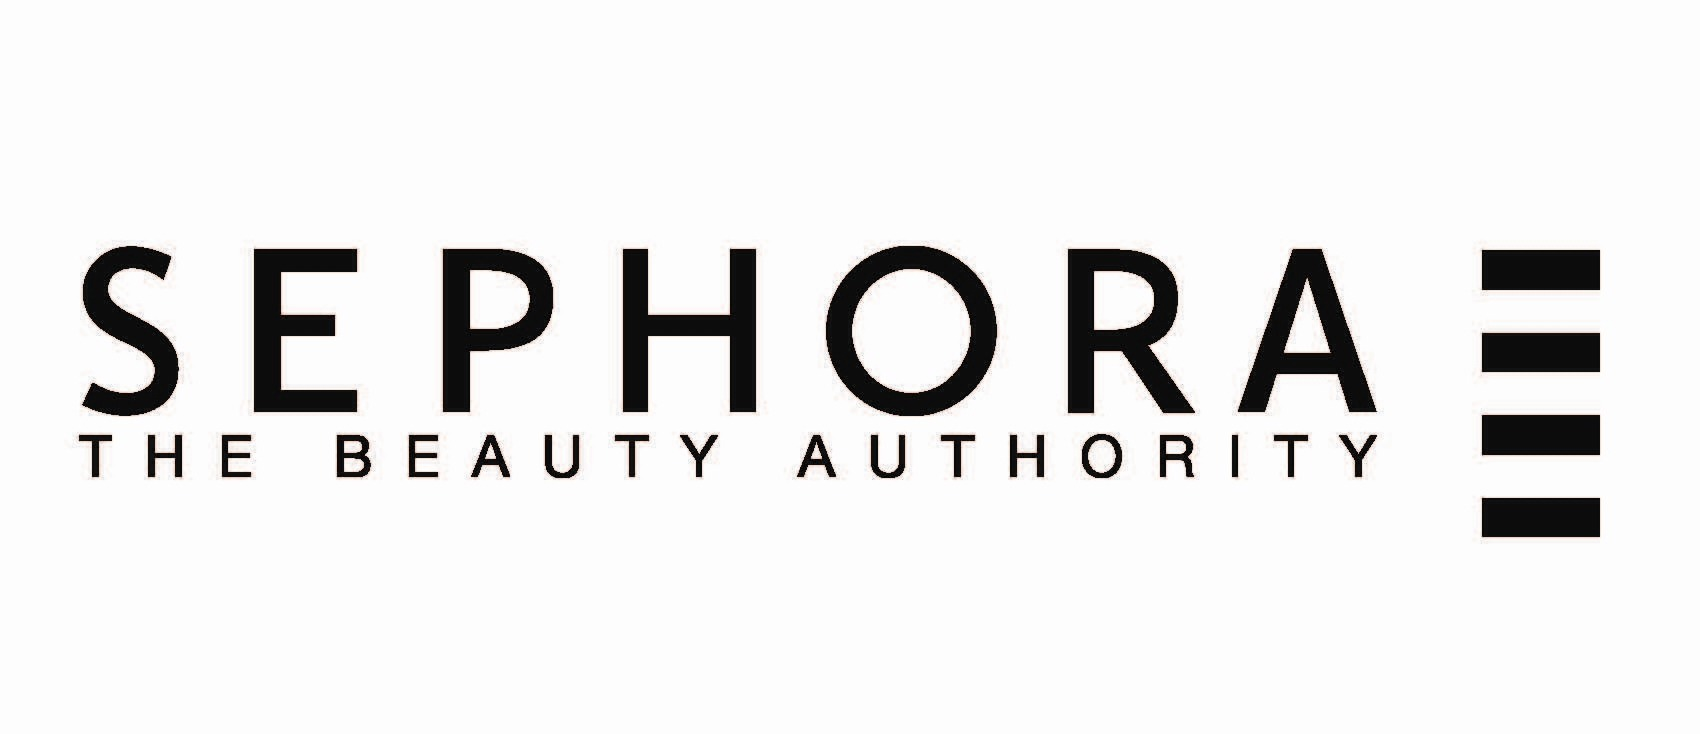 Sephora has some really amazing Black Friday deals!! Stock up on your faves! Then post your haul that you used your Trusper gift card from!! I know I will and I will post all of the goodies!! Remember to ask about the free gifts with your $25 purchase